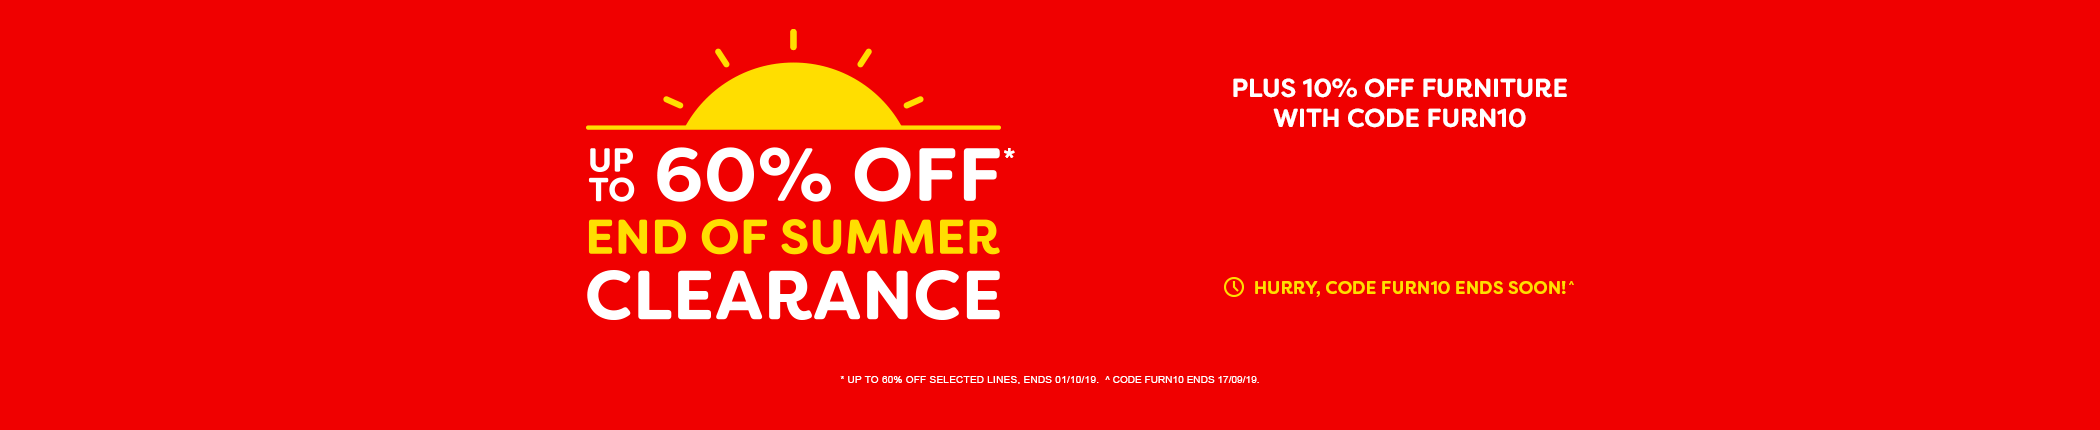 End of Summer Clearance